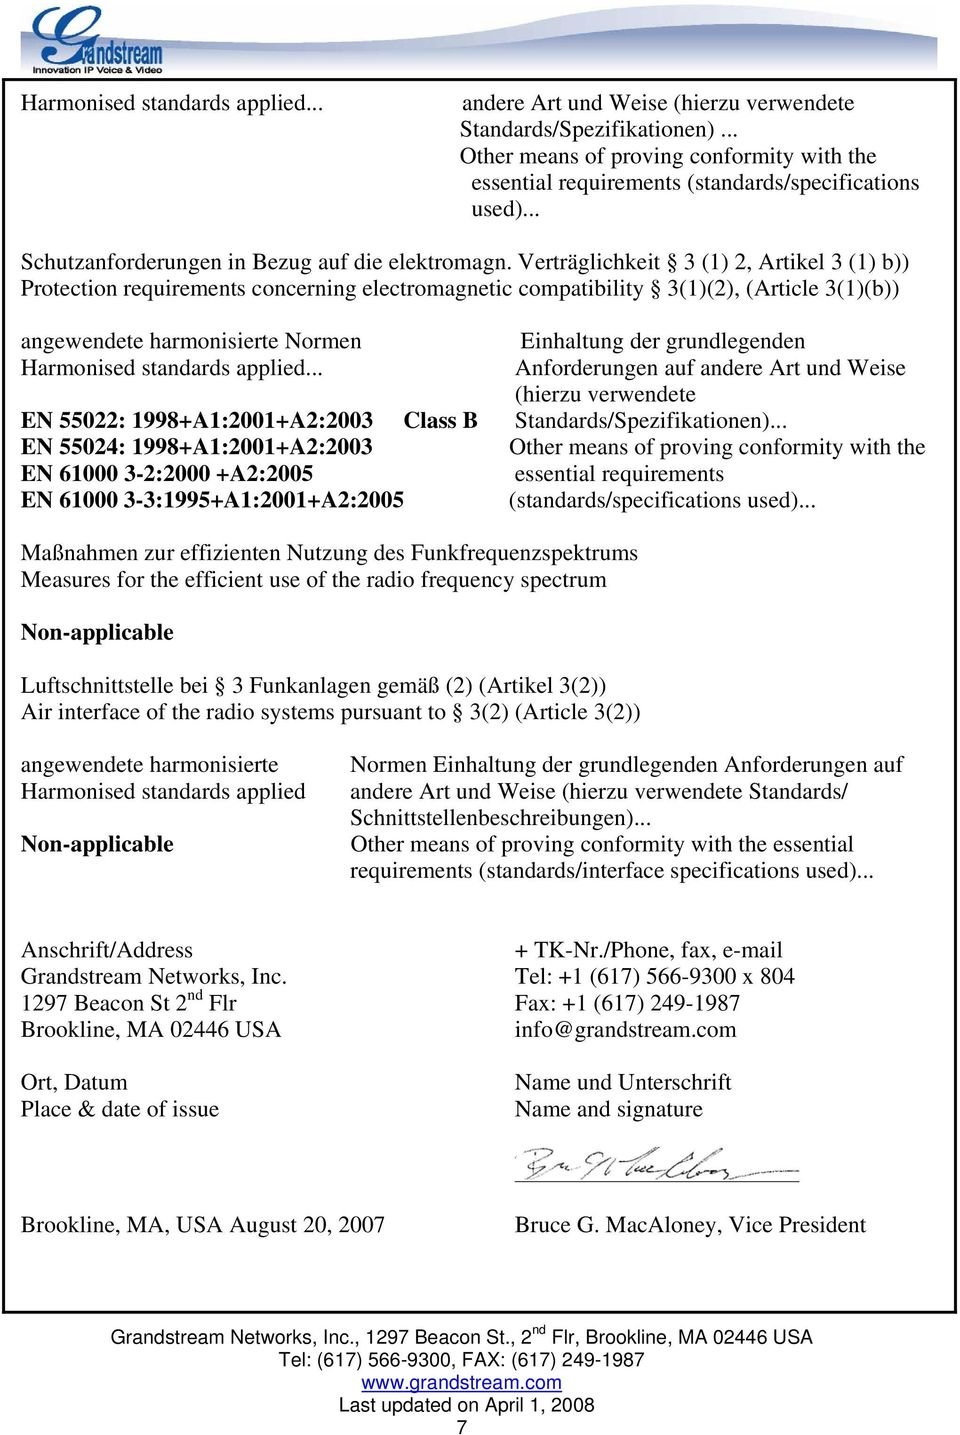 Verträglichkeit 3 (1) 2, Artikel 3 (1) b)) Protection requirements concerning electromagnetic compatibility 3(1)(2), (Article 3(1)(b)) angewendete harmonisierte Normen Einhaltung der grundlegenden